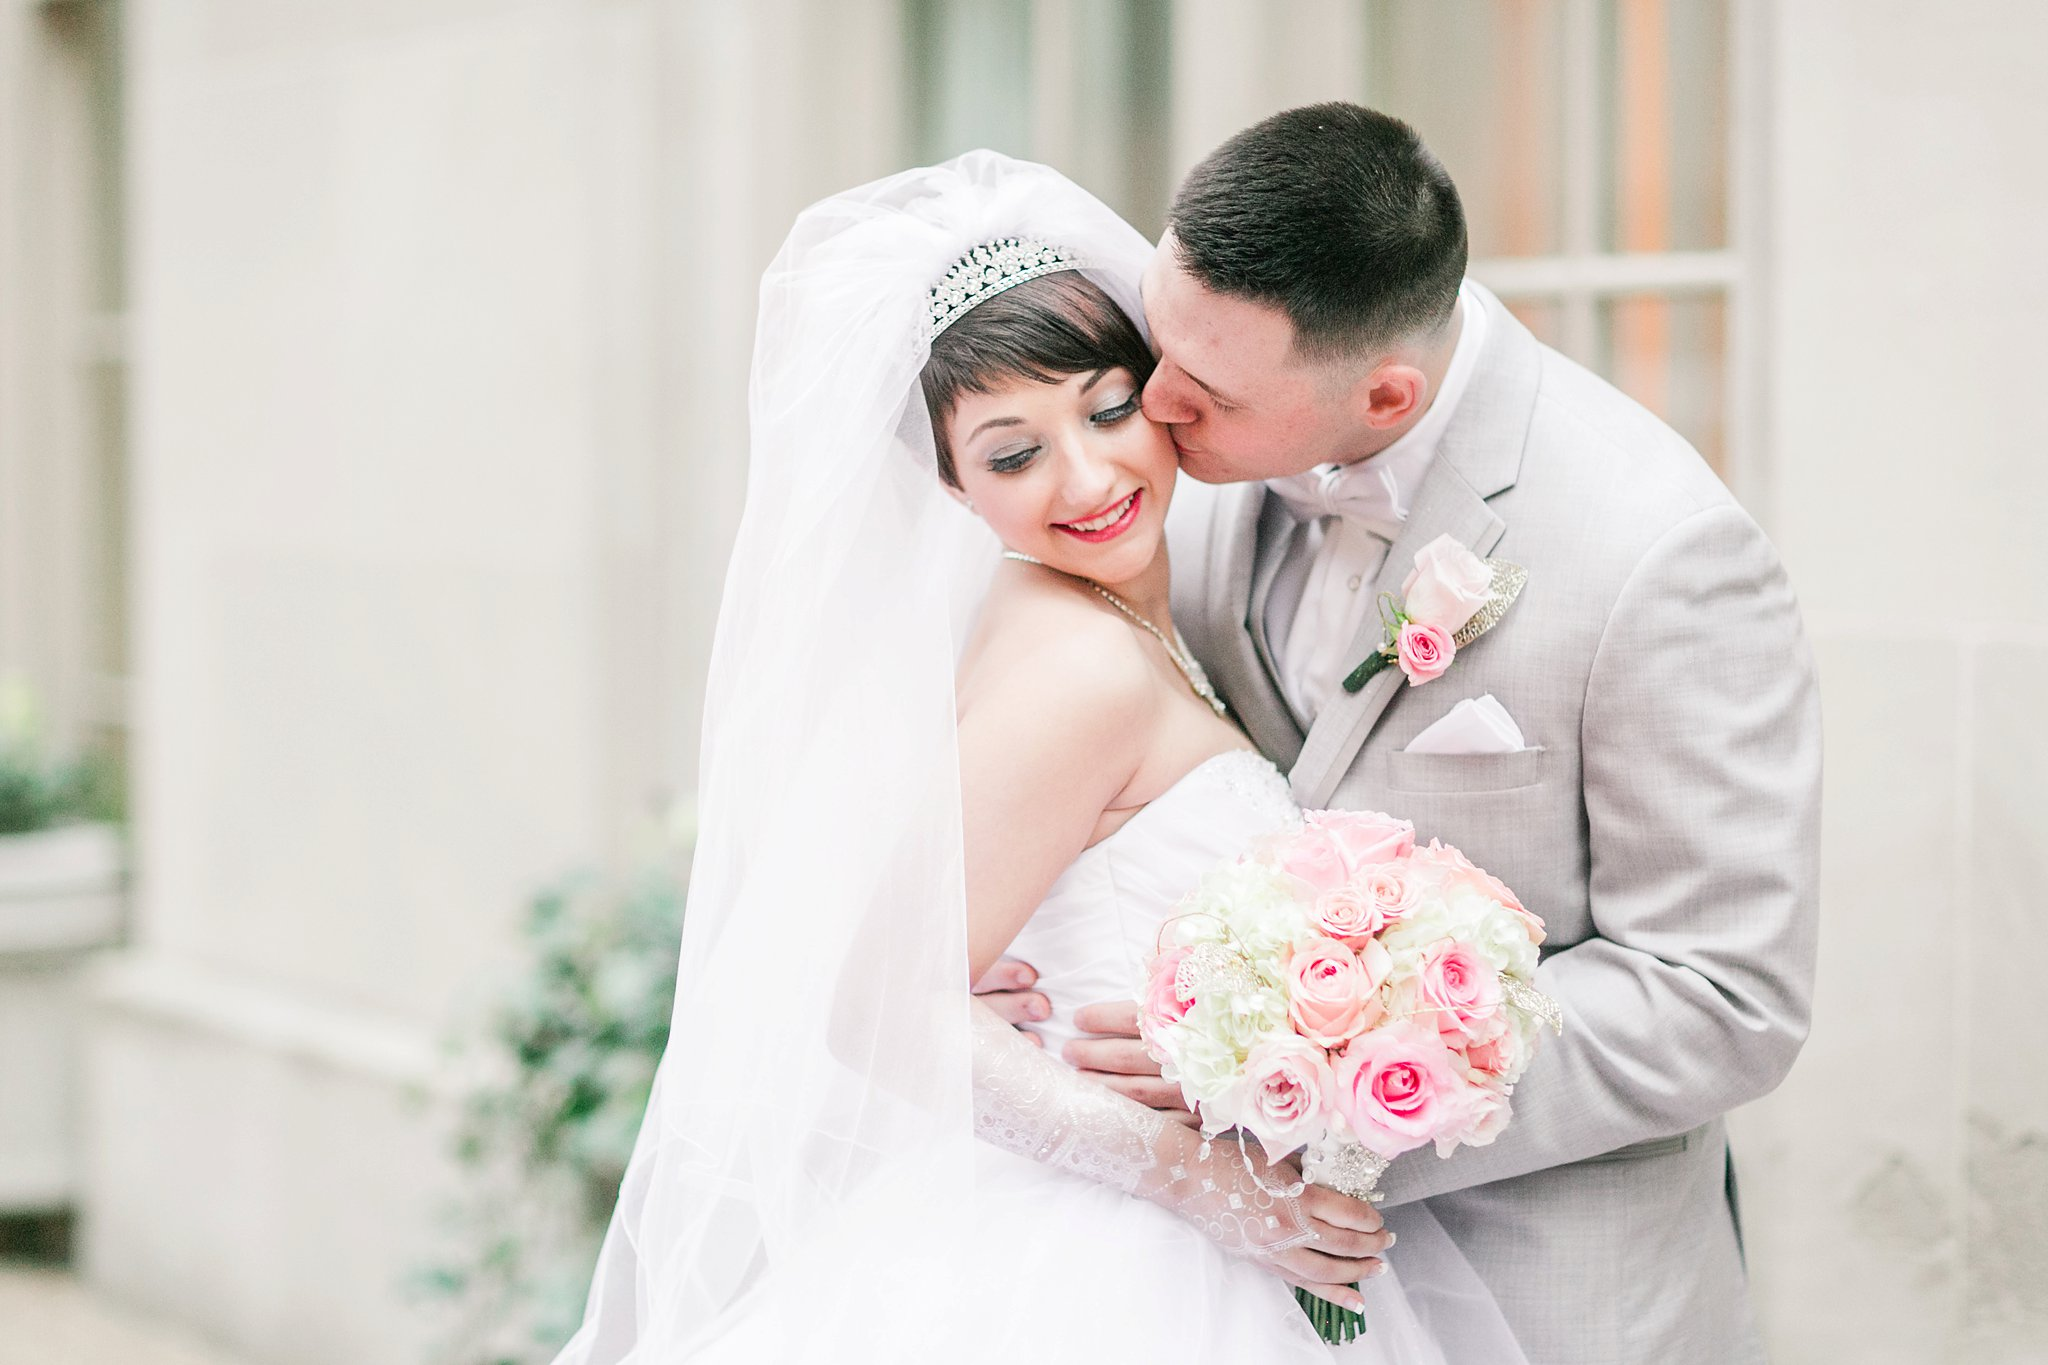 Mayflower Hotel Wedding Photos DC Pink & Gold Winter Wedding Tori & Tyler-121_photo.jpg